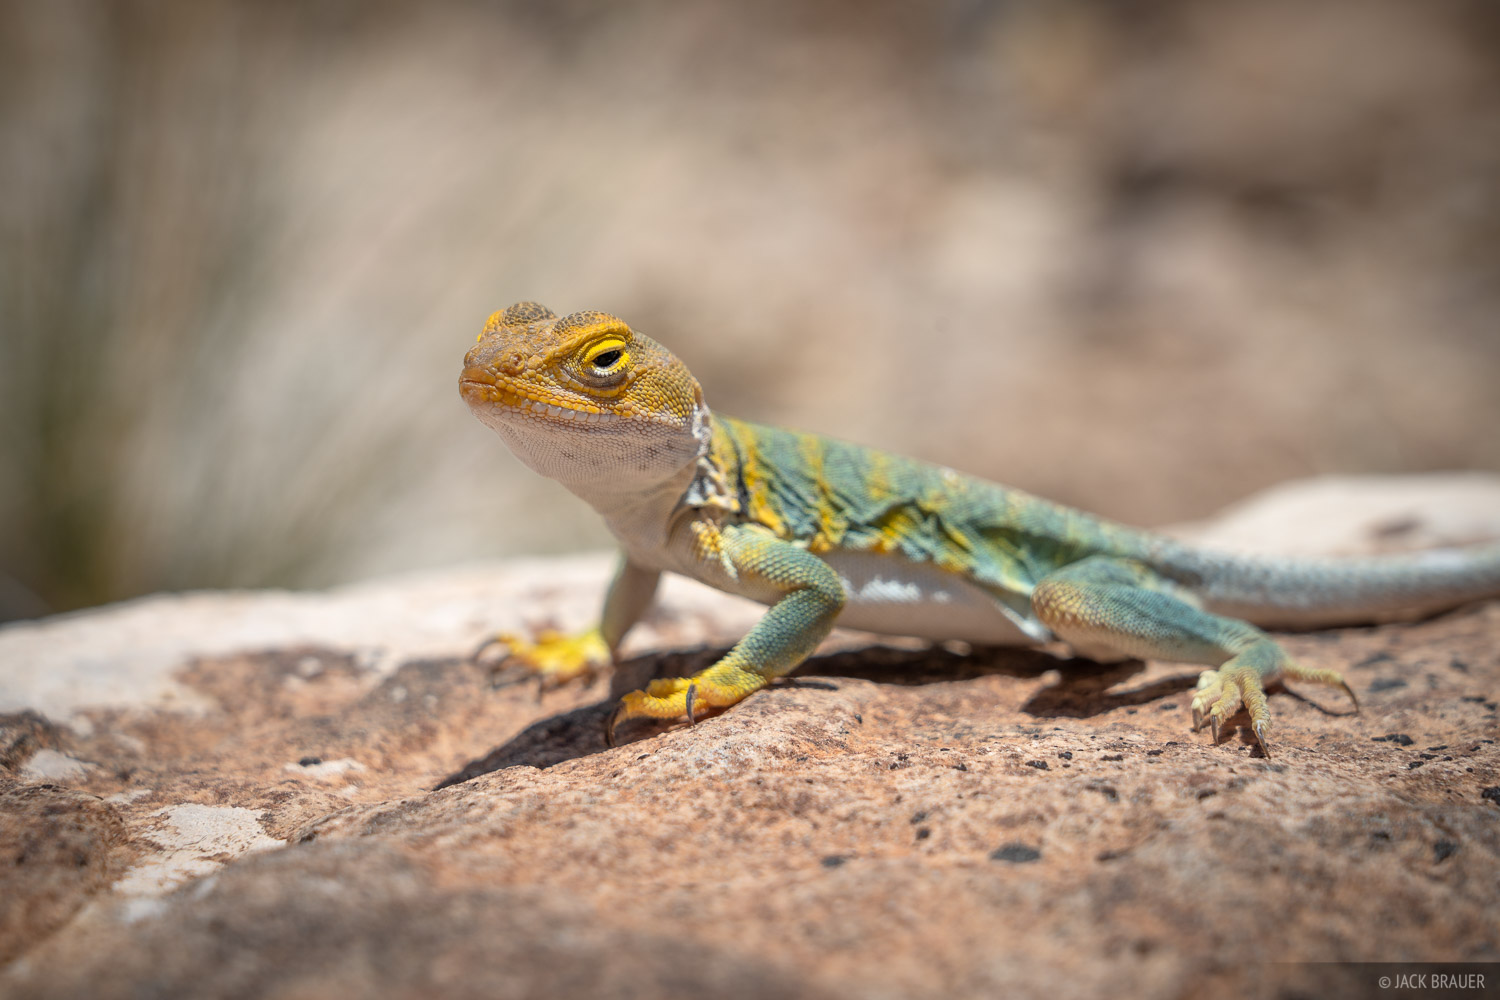 Colorado, Gunnison Gorge, Gunnison River, lizard, photo